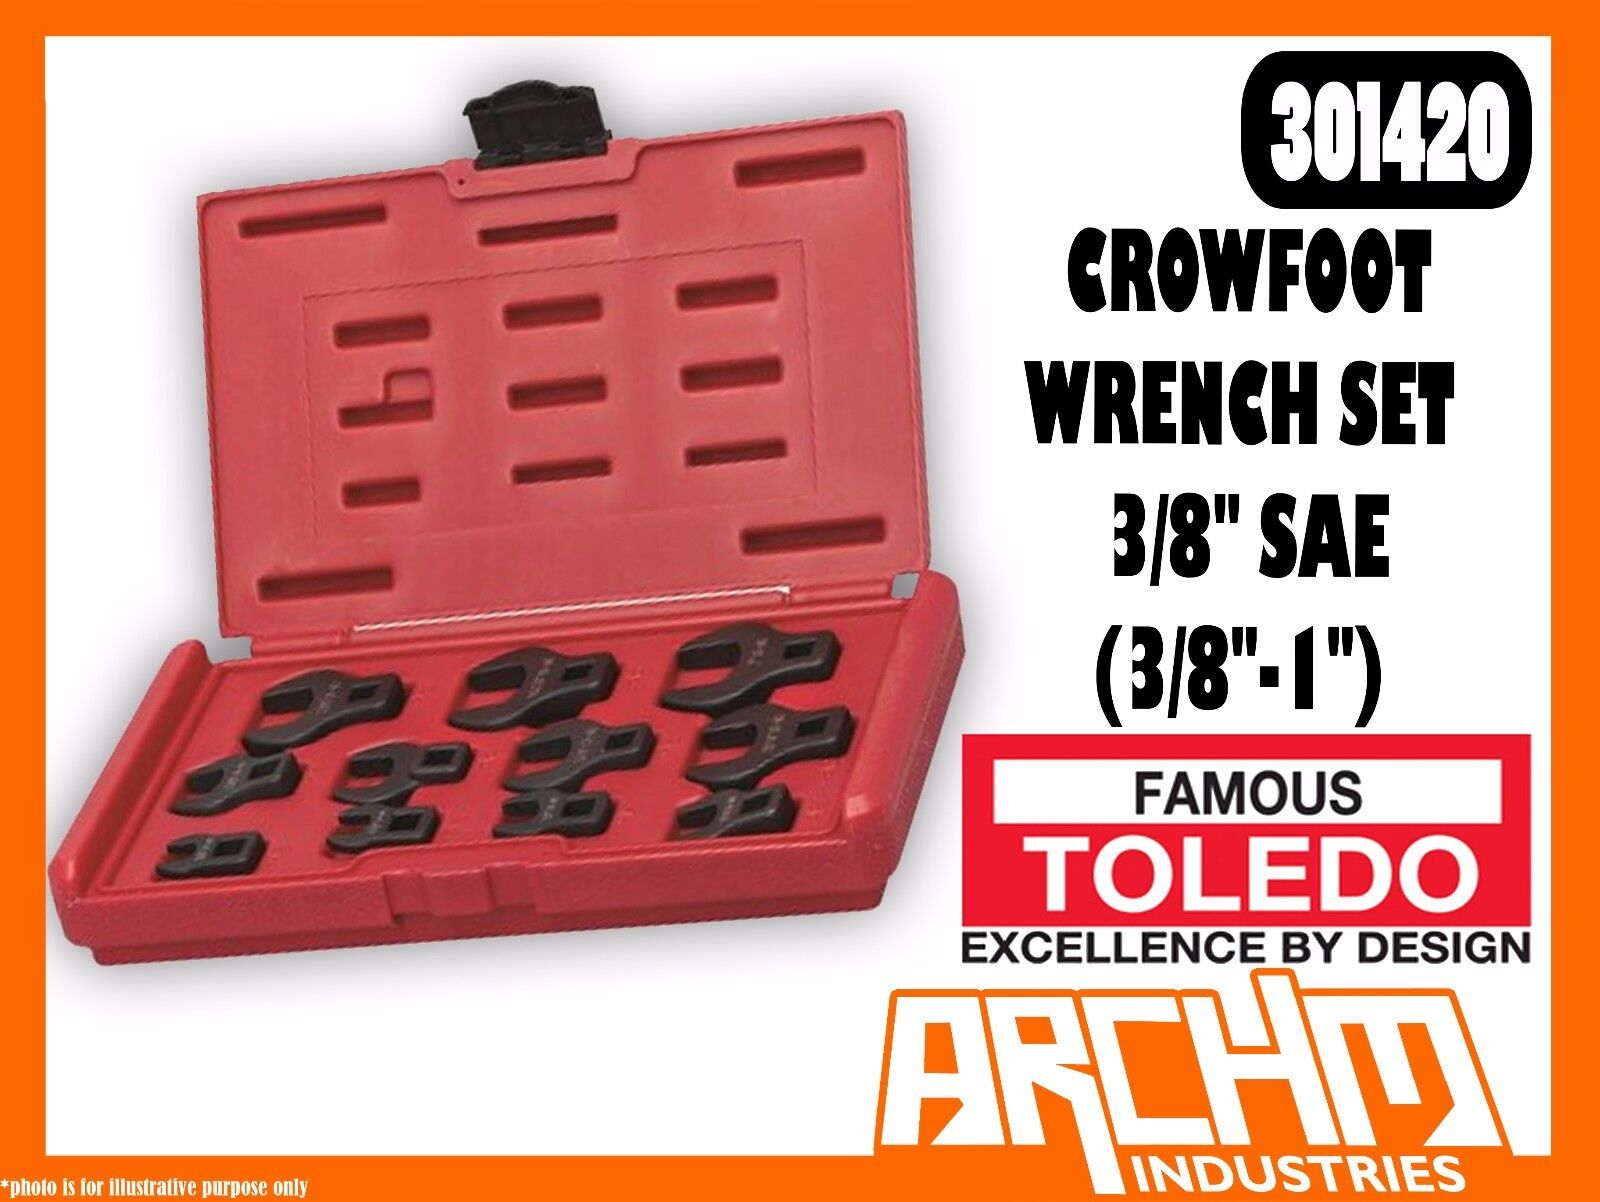 TOLEDO 301420 - CROWFOOT WRENCH SET 3 8  - SAE (3 8 -1 ) 11 PC STRAIGHT JAW